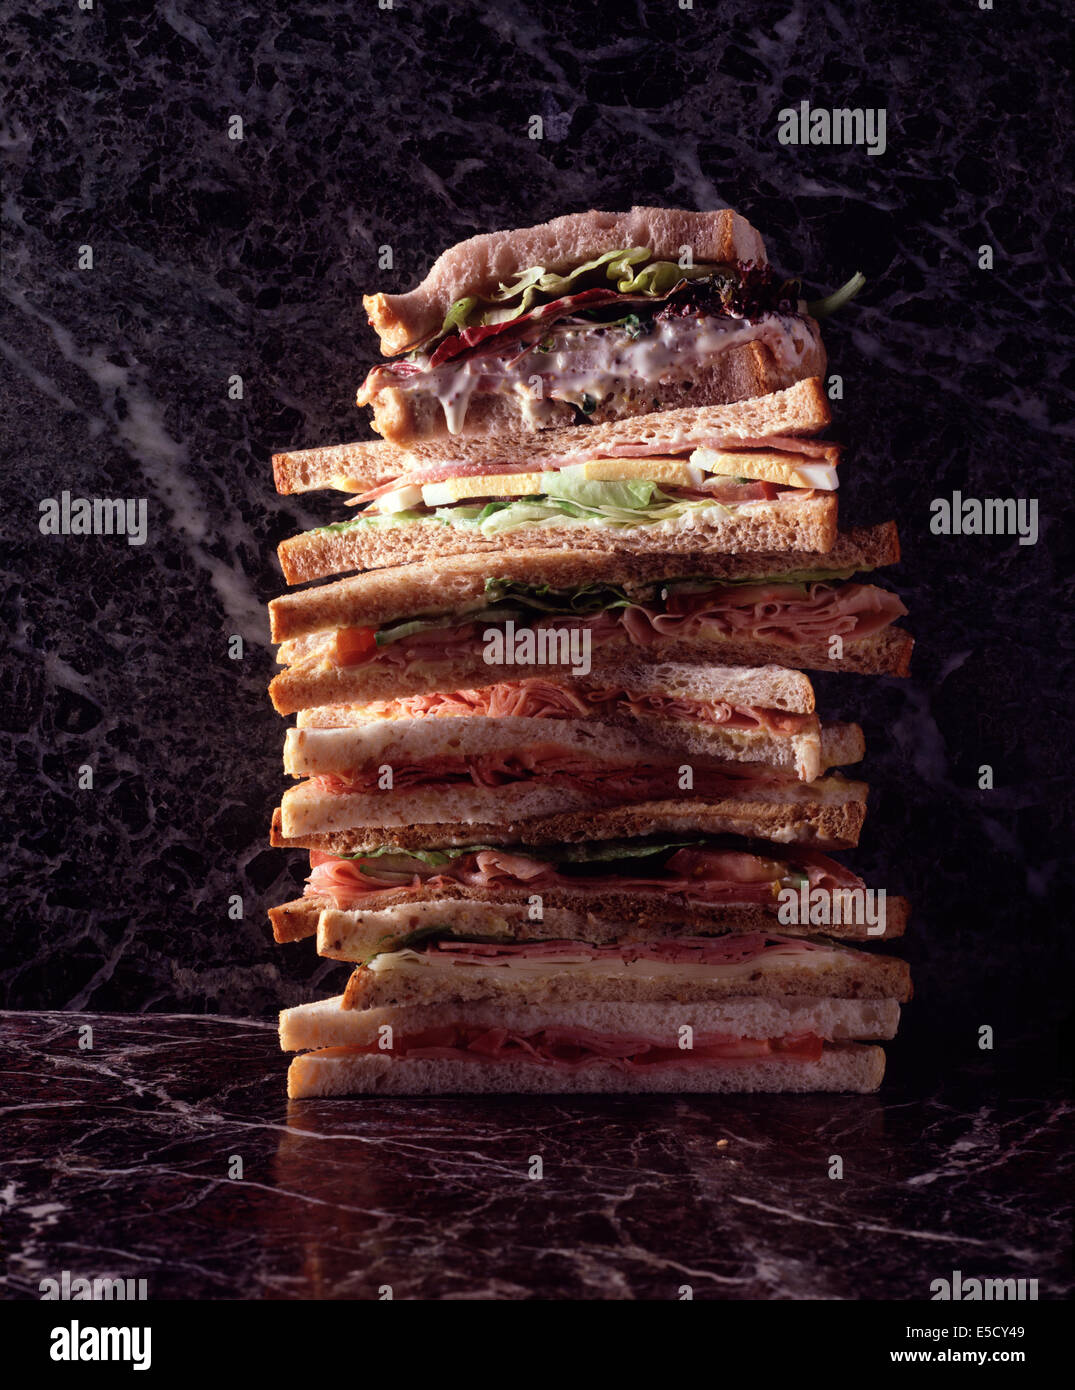 A stack of sandwiches one on top of the other, against a green and purple marble background. - Stock Image